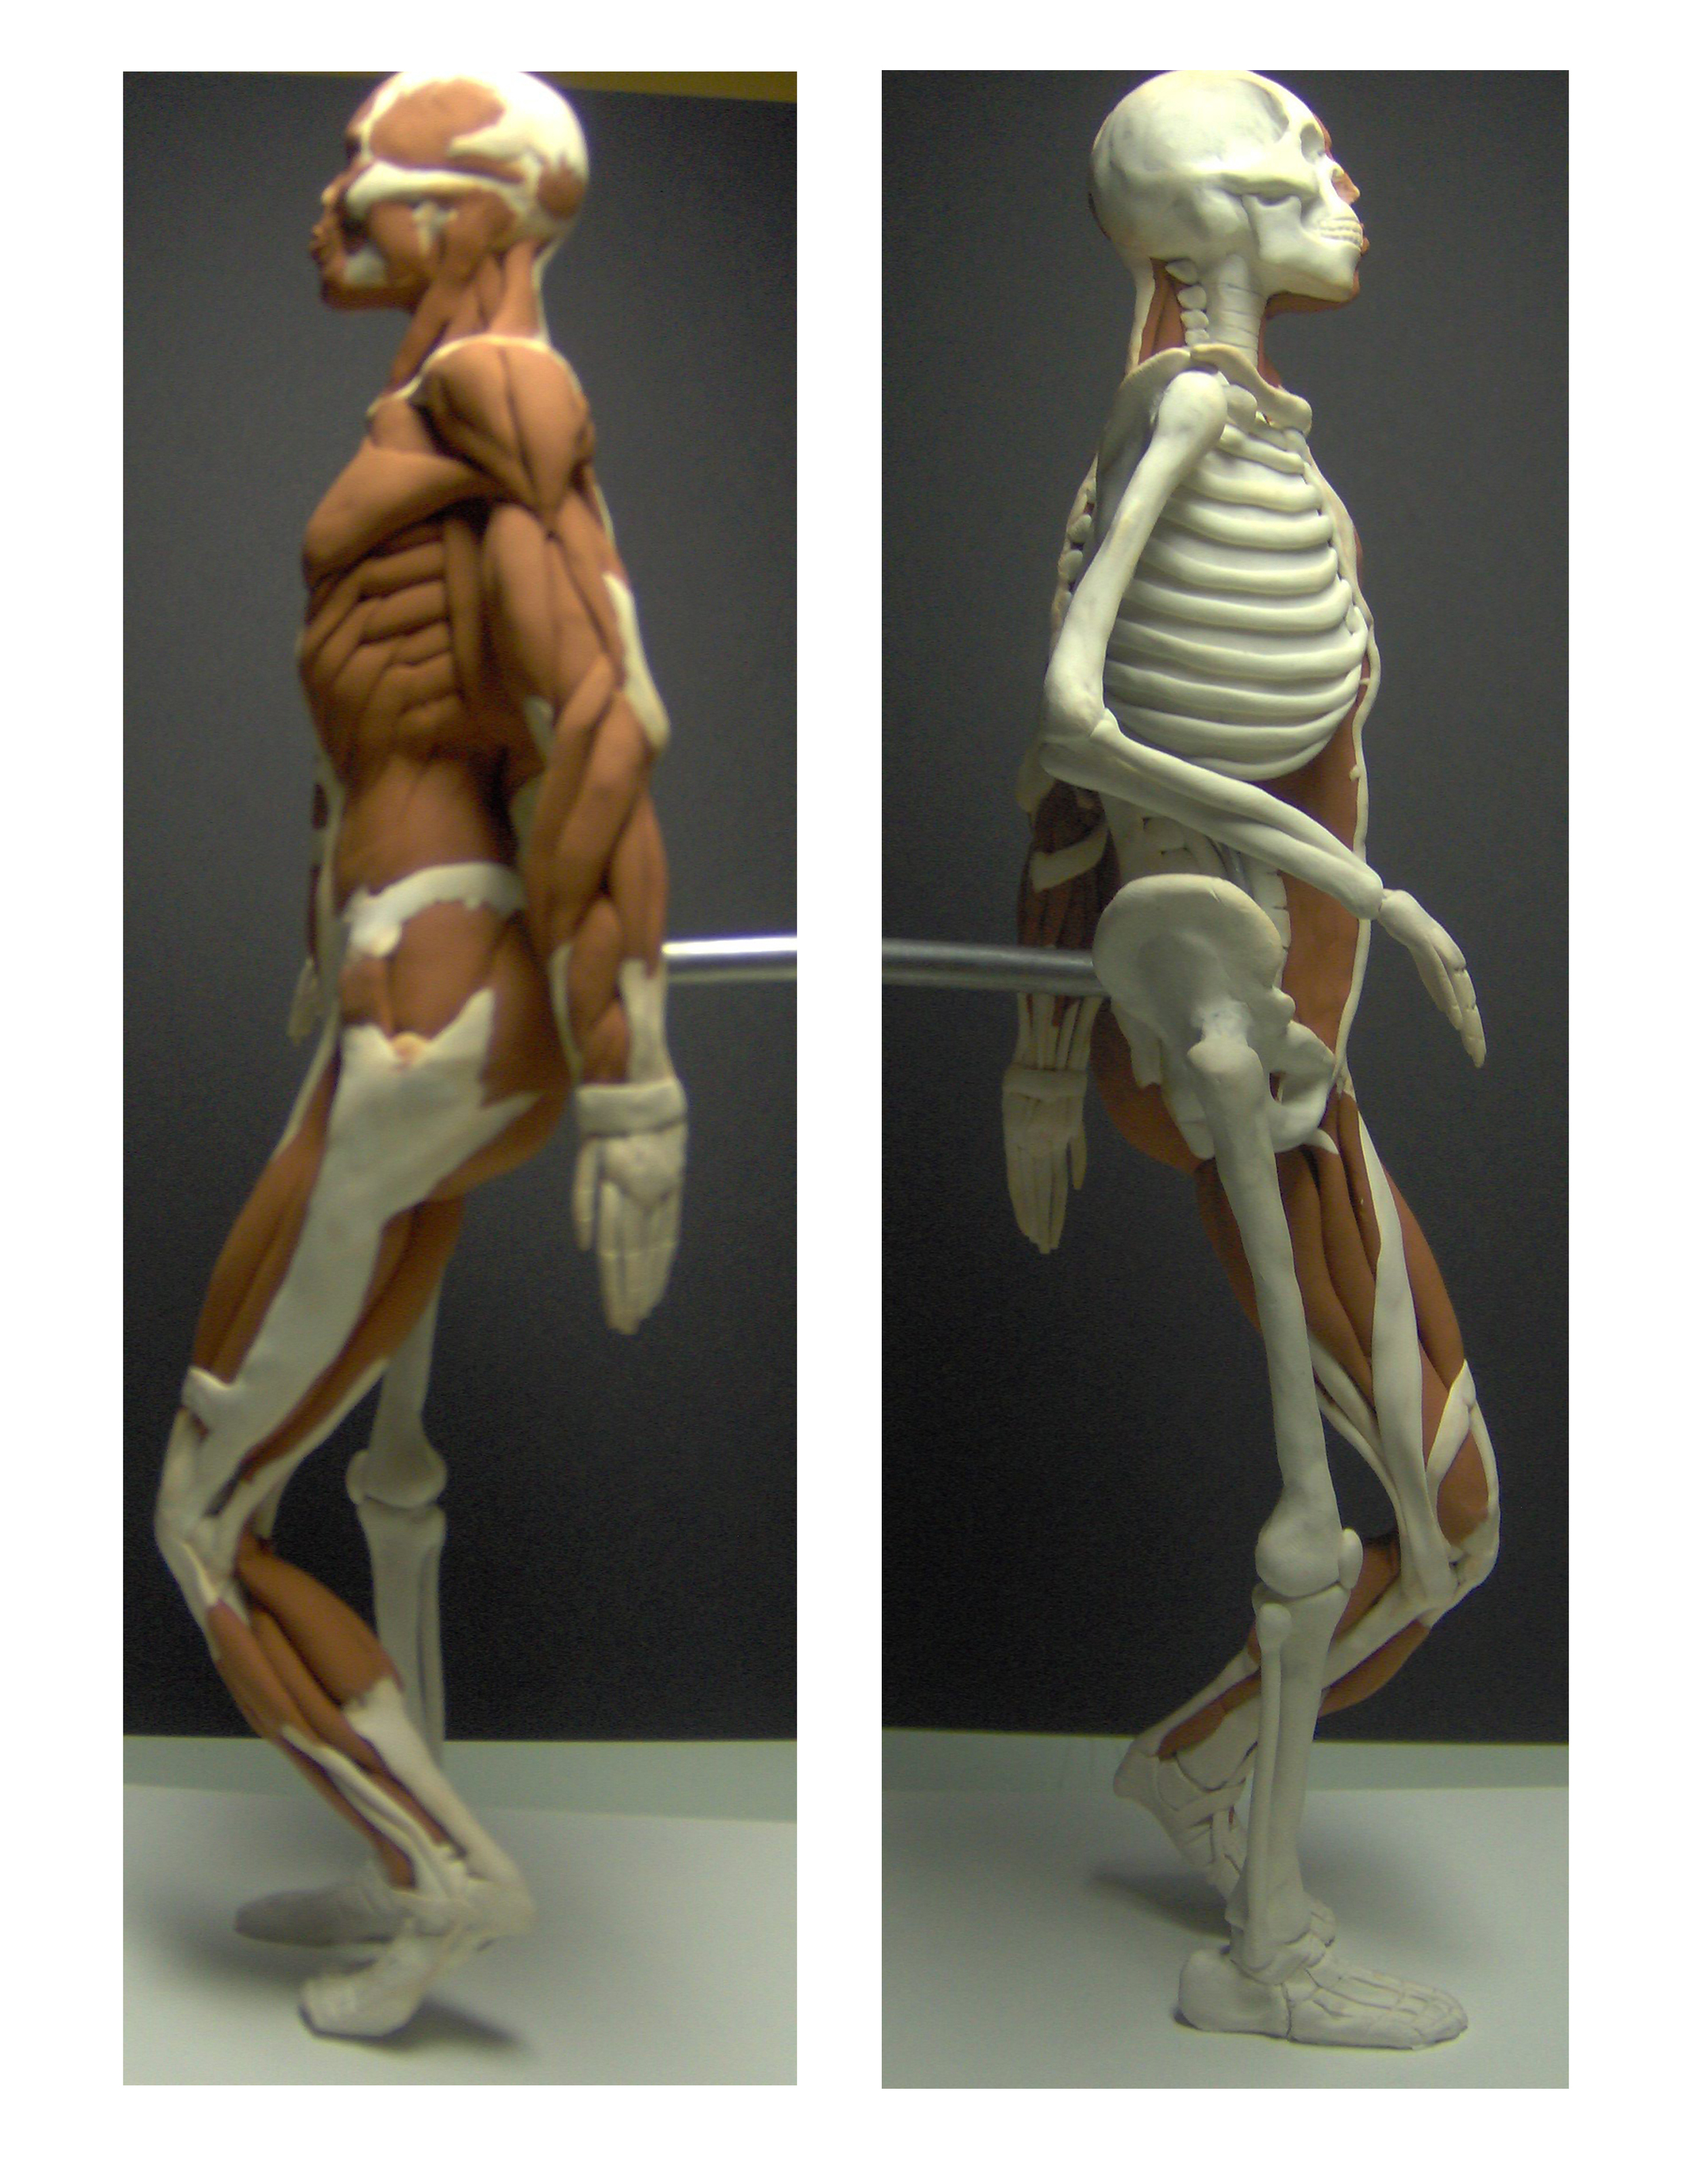 Human Skeletal & Muscular Structure Maquette